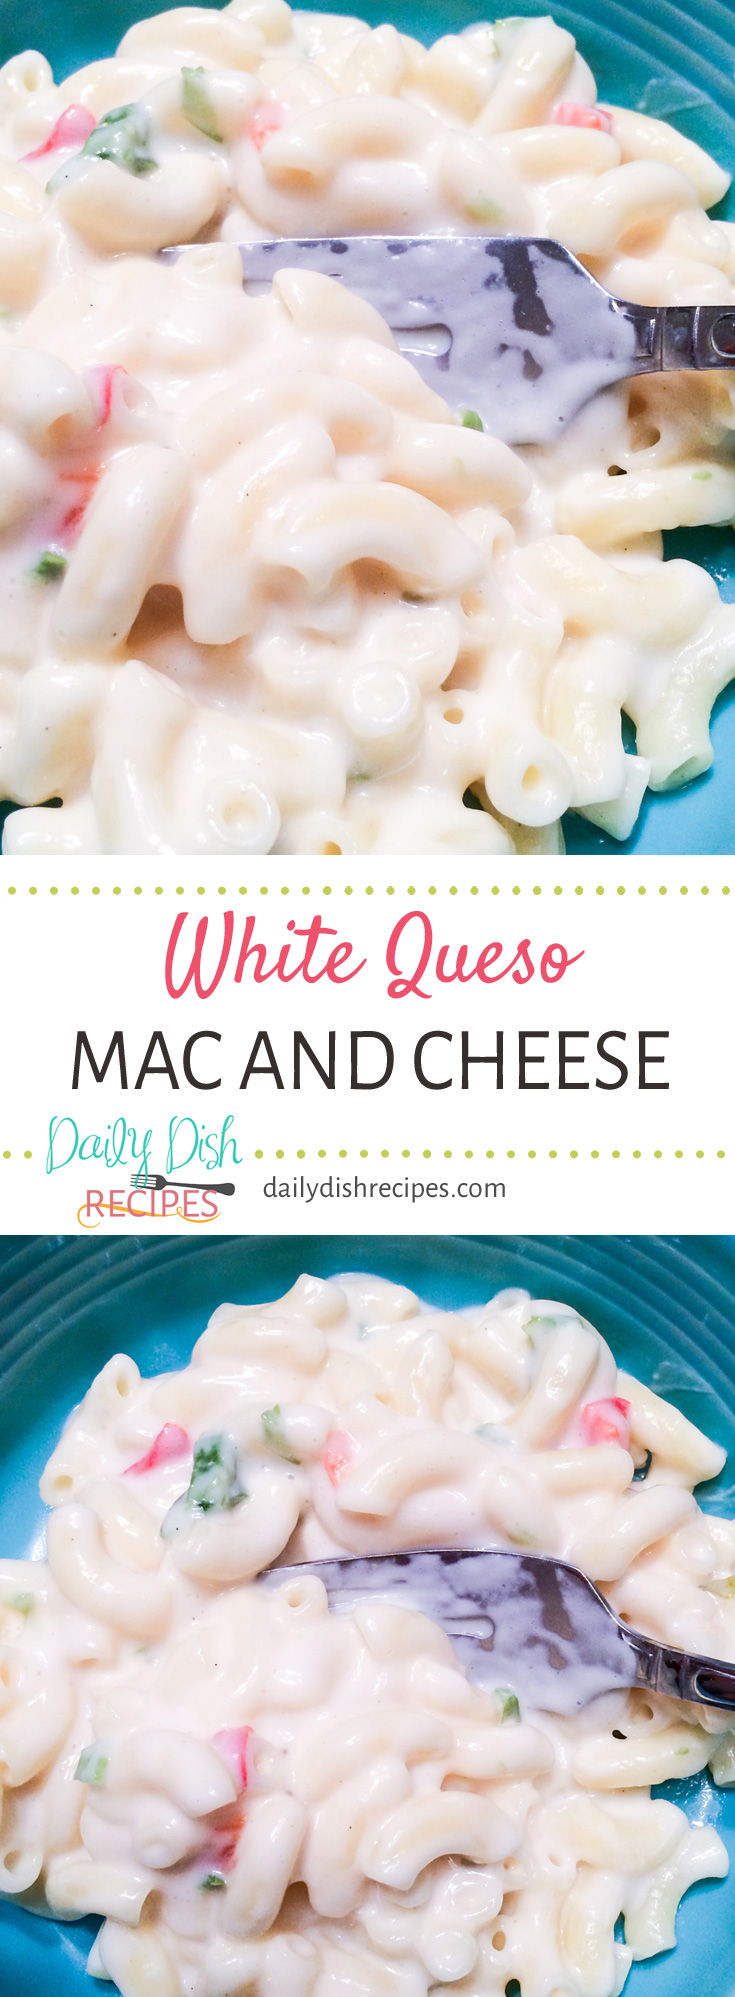 White Queso Mac and Cheese